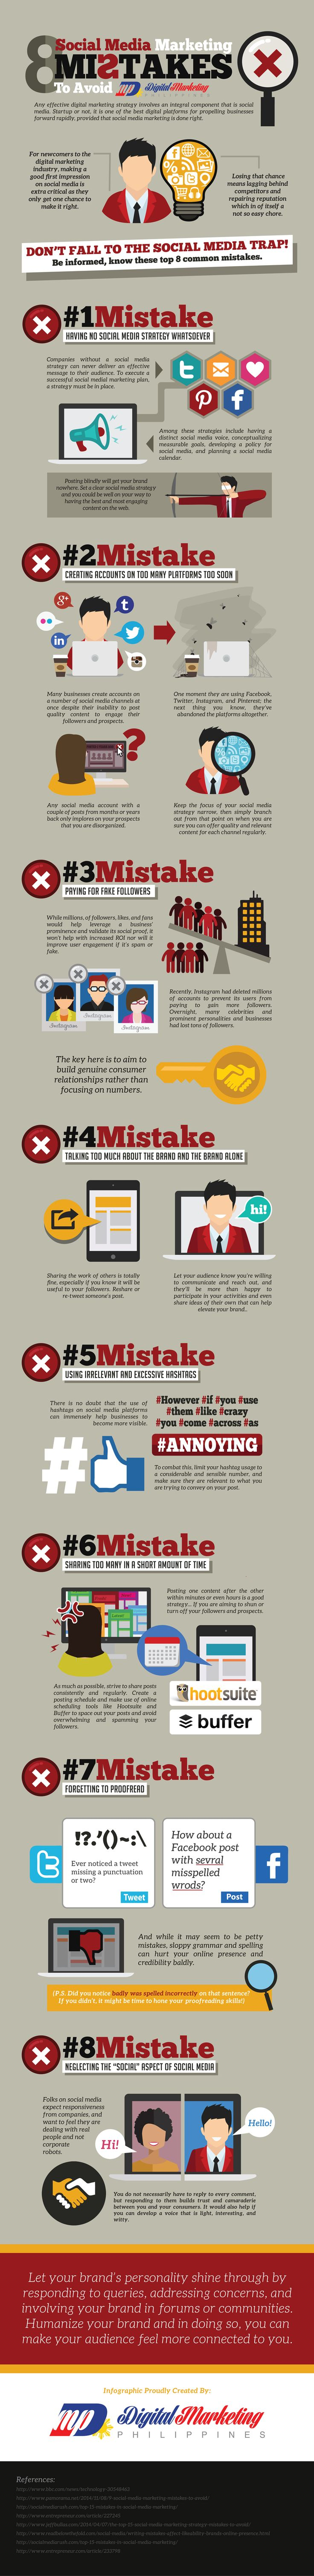 8 Social Media Marketing Mistakes to Avoid (Infographic) #socialmedia